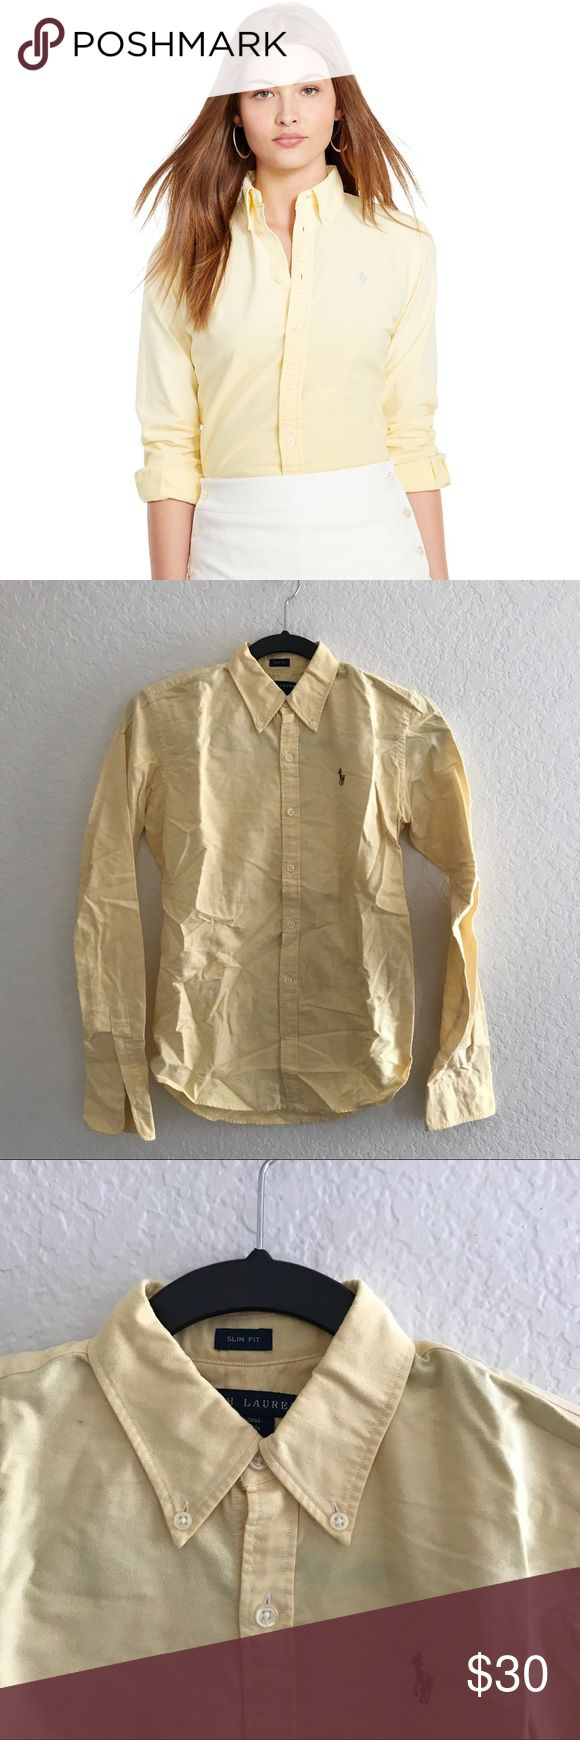 Ralph Lauren Women's Yellow Oxford Shirt Women's Ralph Lauren Polo brand button down oxford shirt. Only worn once. In like new condition (just needs to be ironed). Ralph Lauren Tops Button Down Shirts